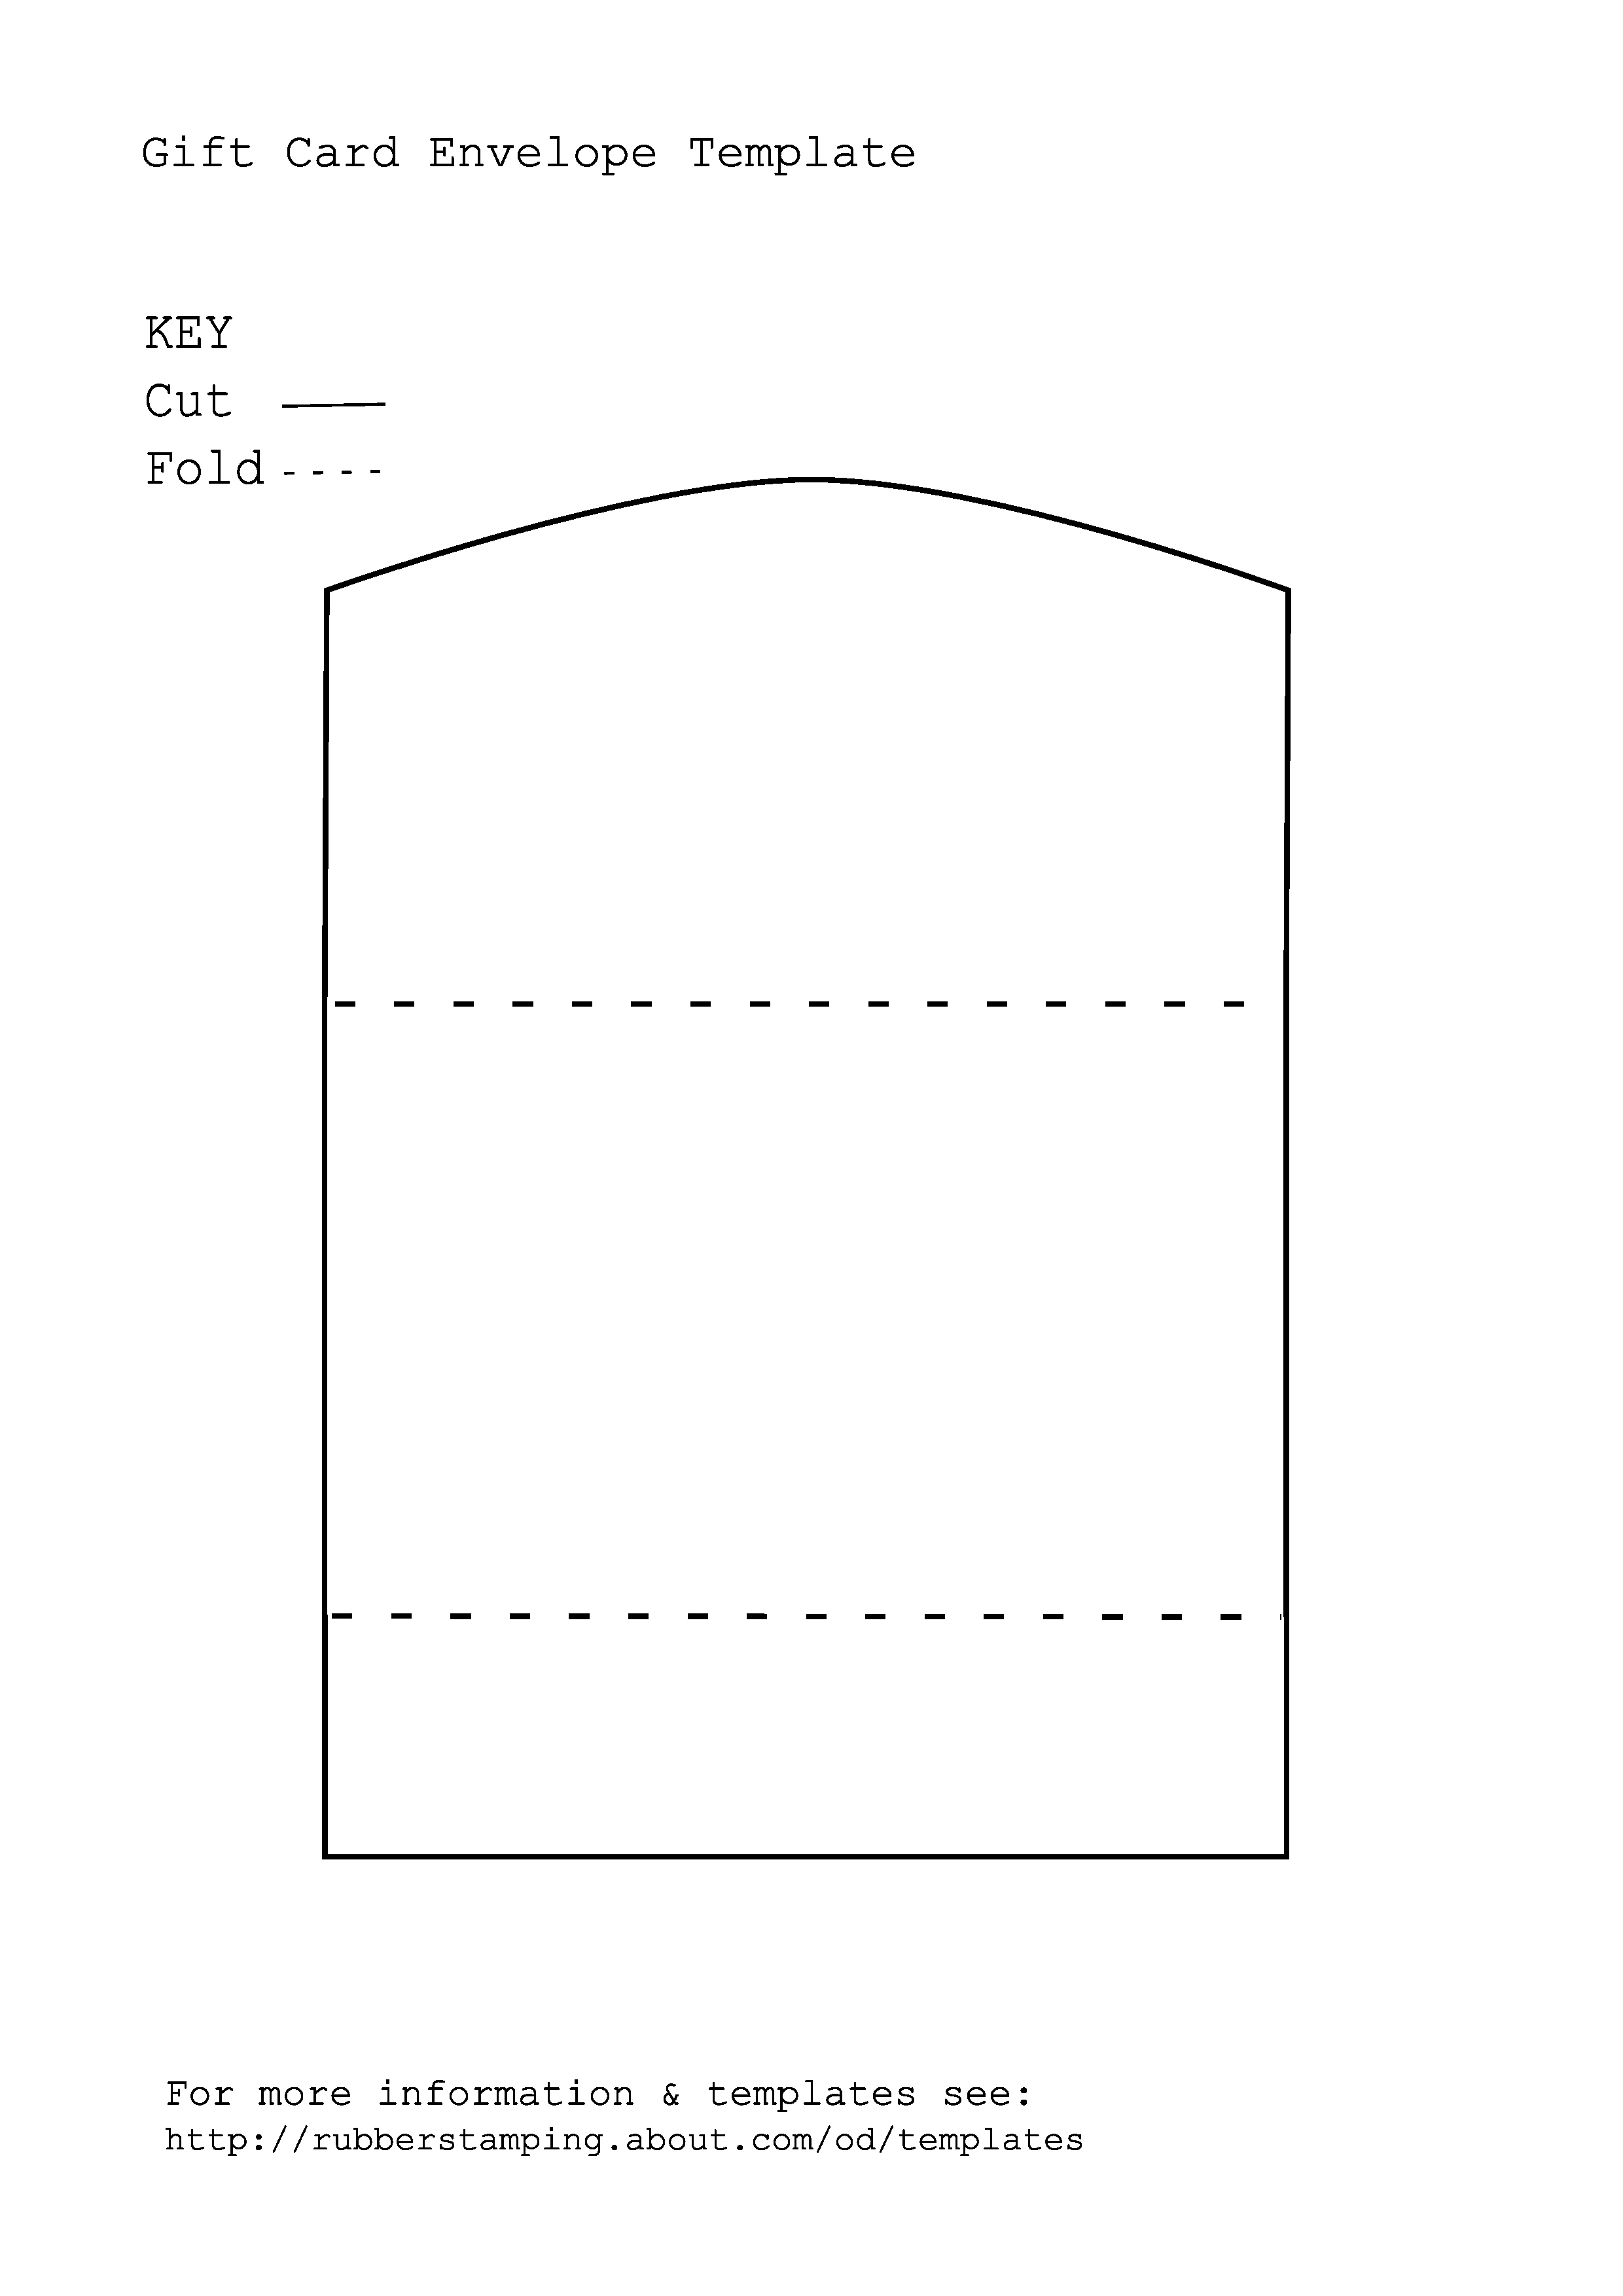 Gift Card Envelope Template Best Of Learn How to Make some Super Easy Envelopes